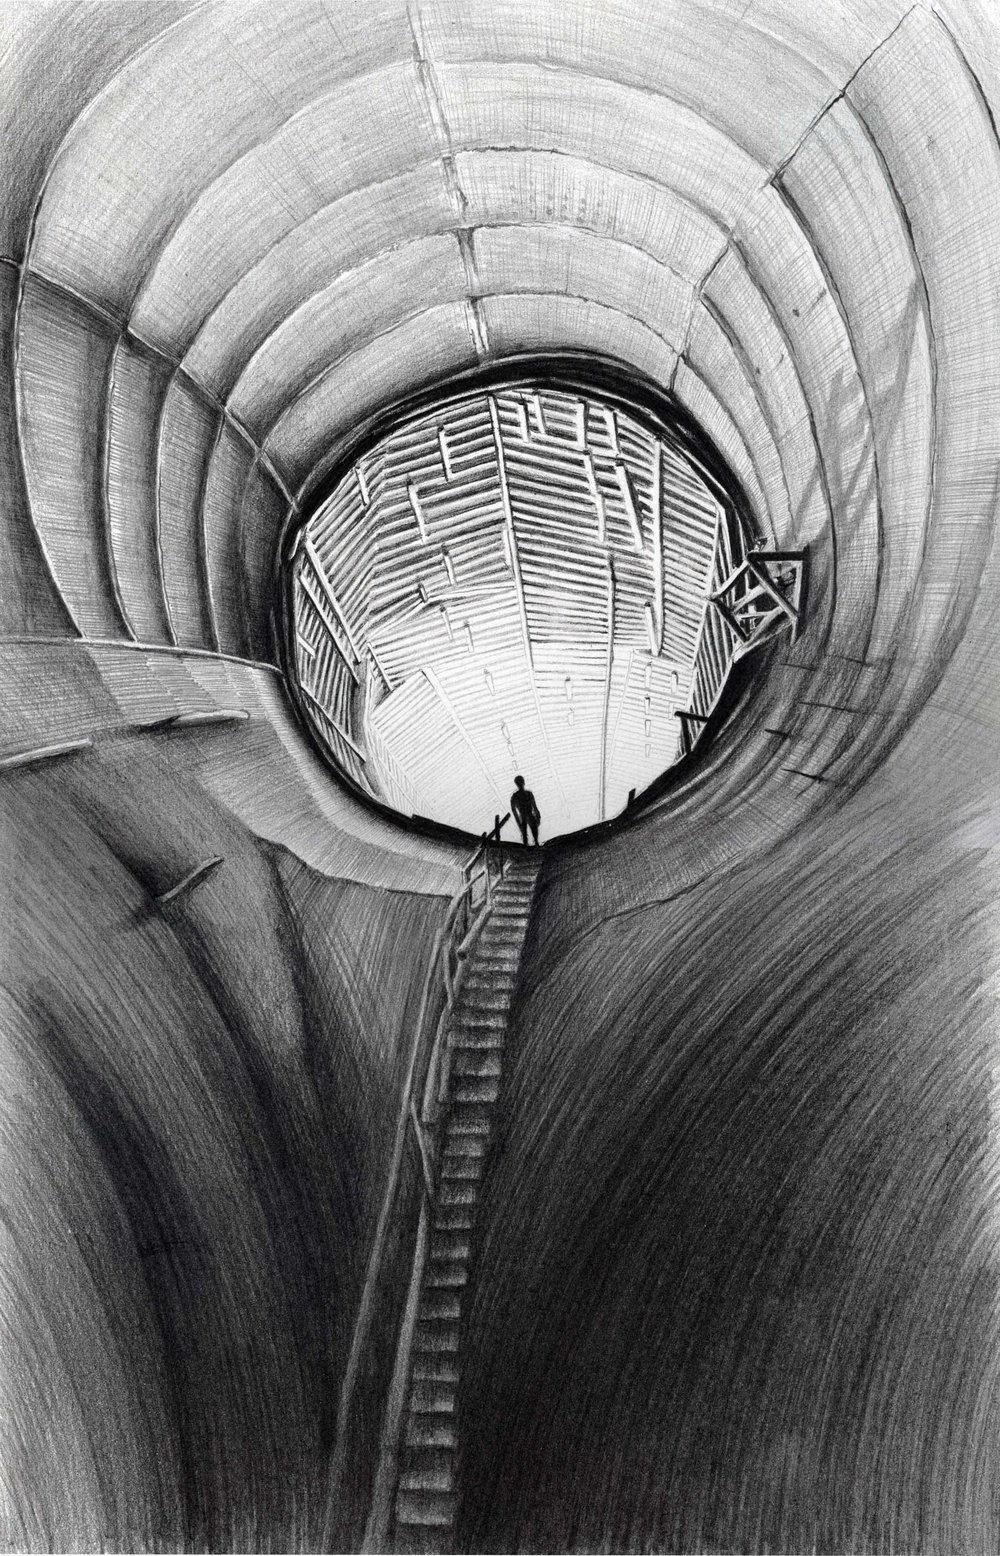 Mining the God particle, pencil on paper, 40 x 26 cm, 2014